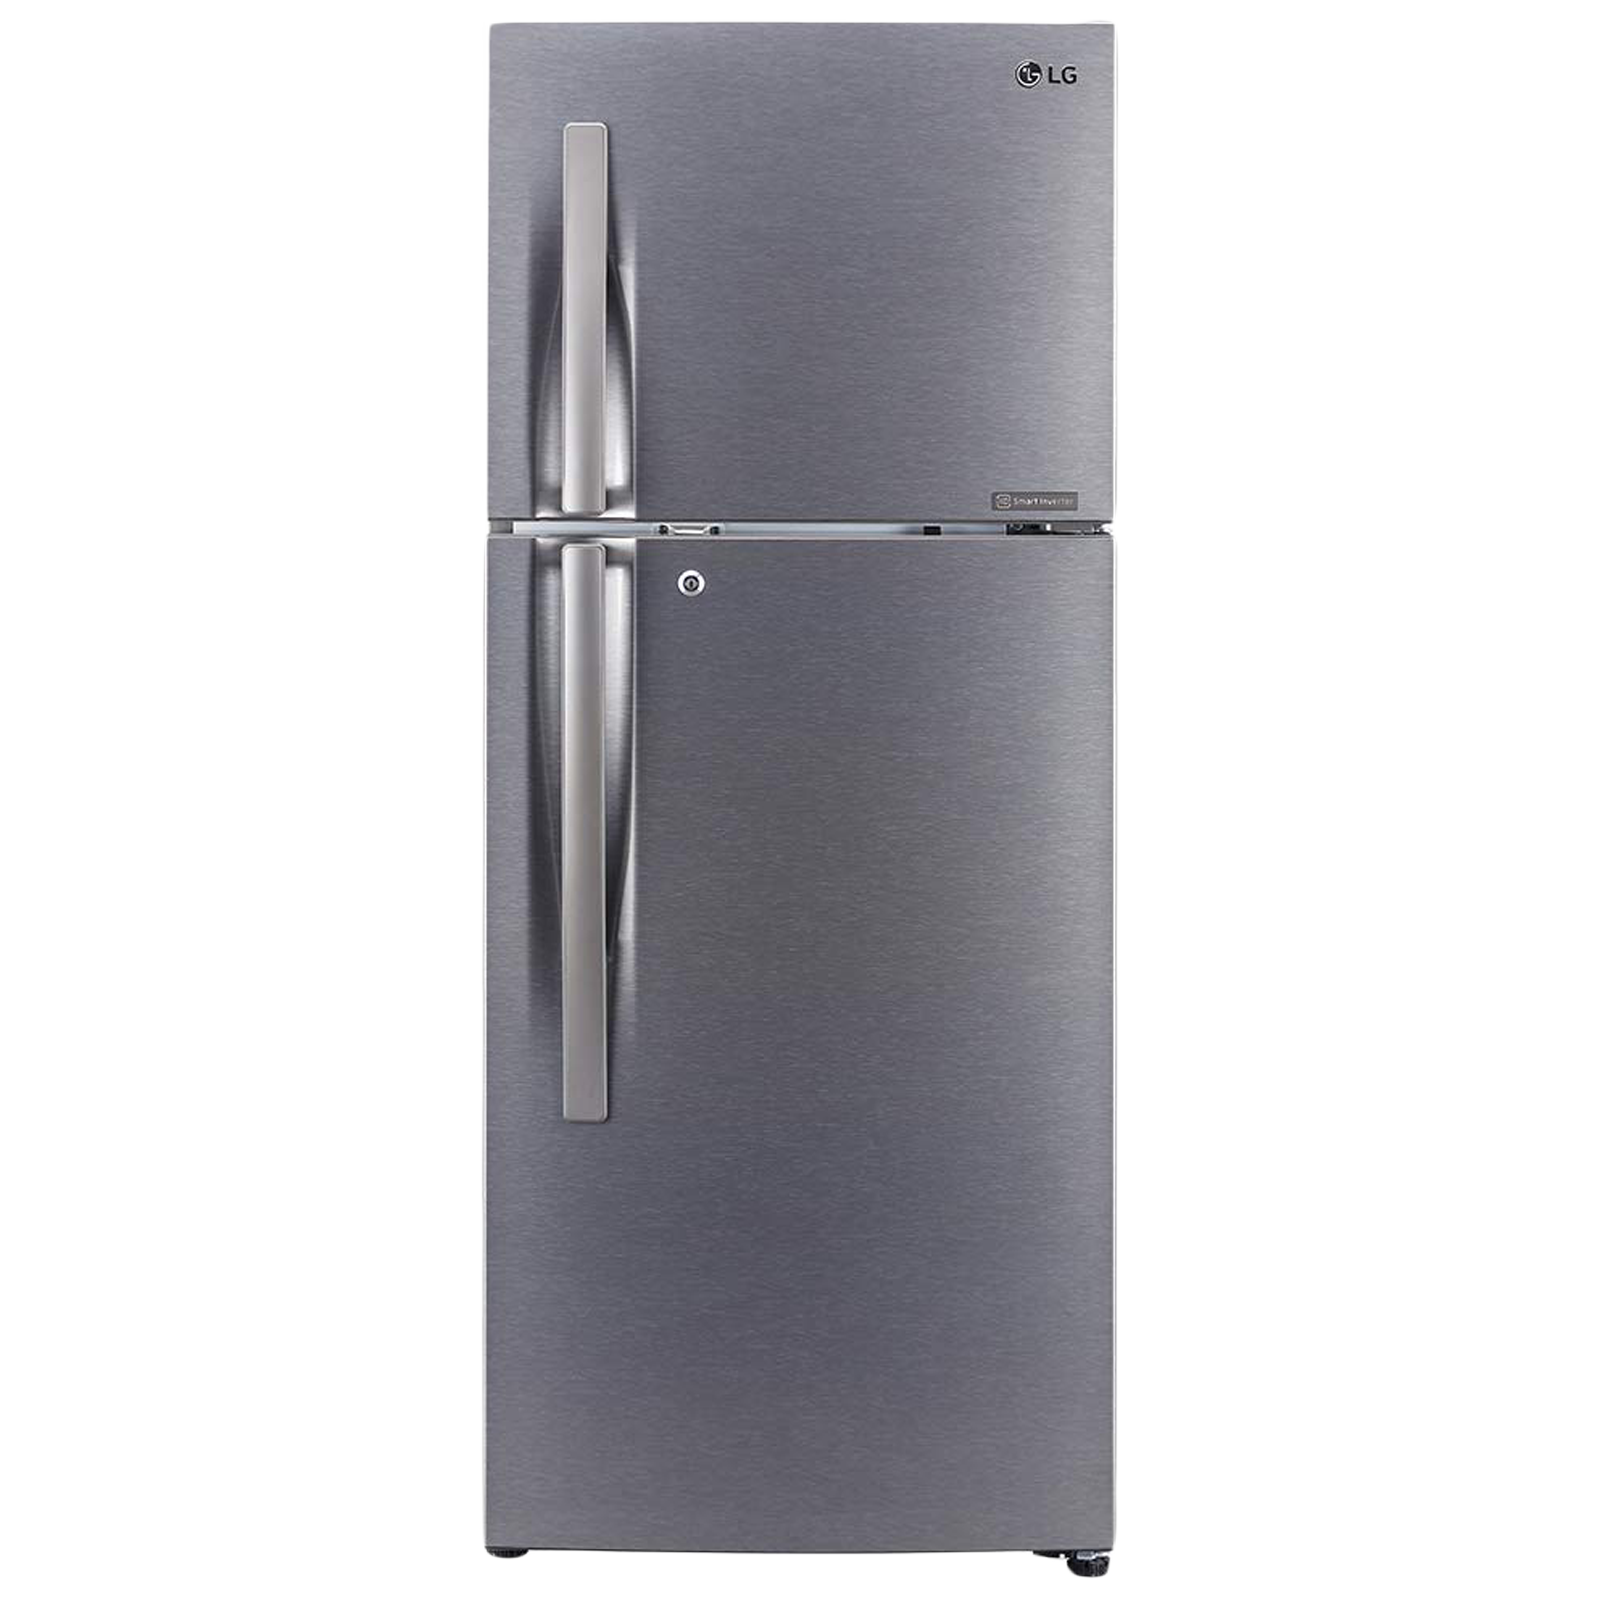 LG 260 Litres 2 Star Frost Free Smart Inverter Double Door Refrigerator (Multi Air Flow Cooling Technology, GL-N292RDSY, Dazzle Steel)_1